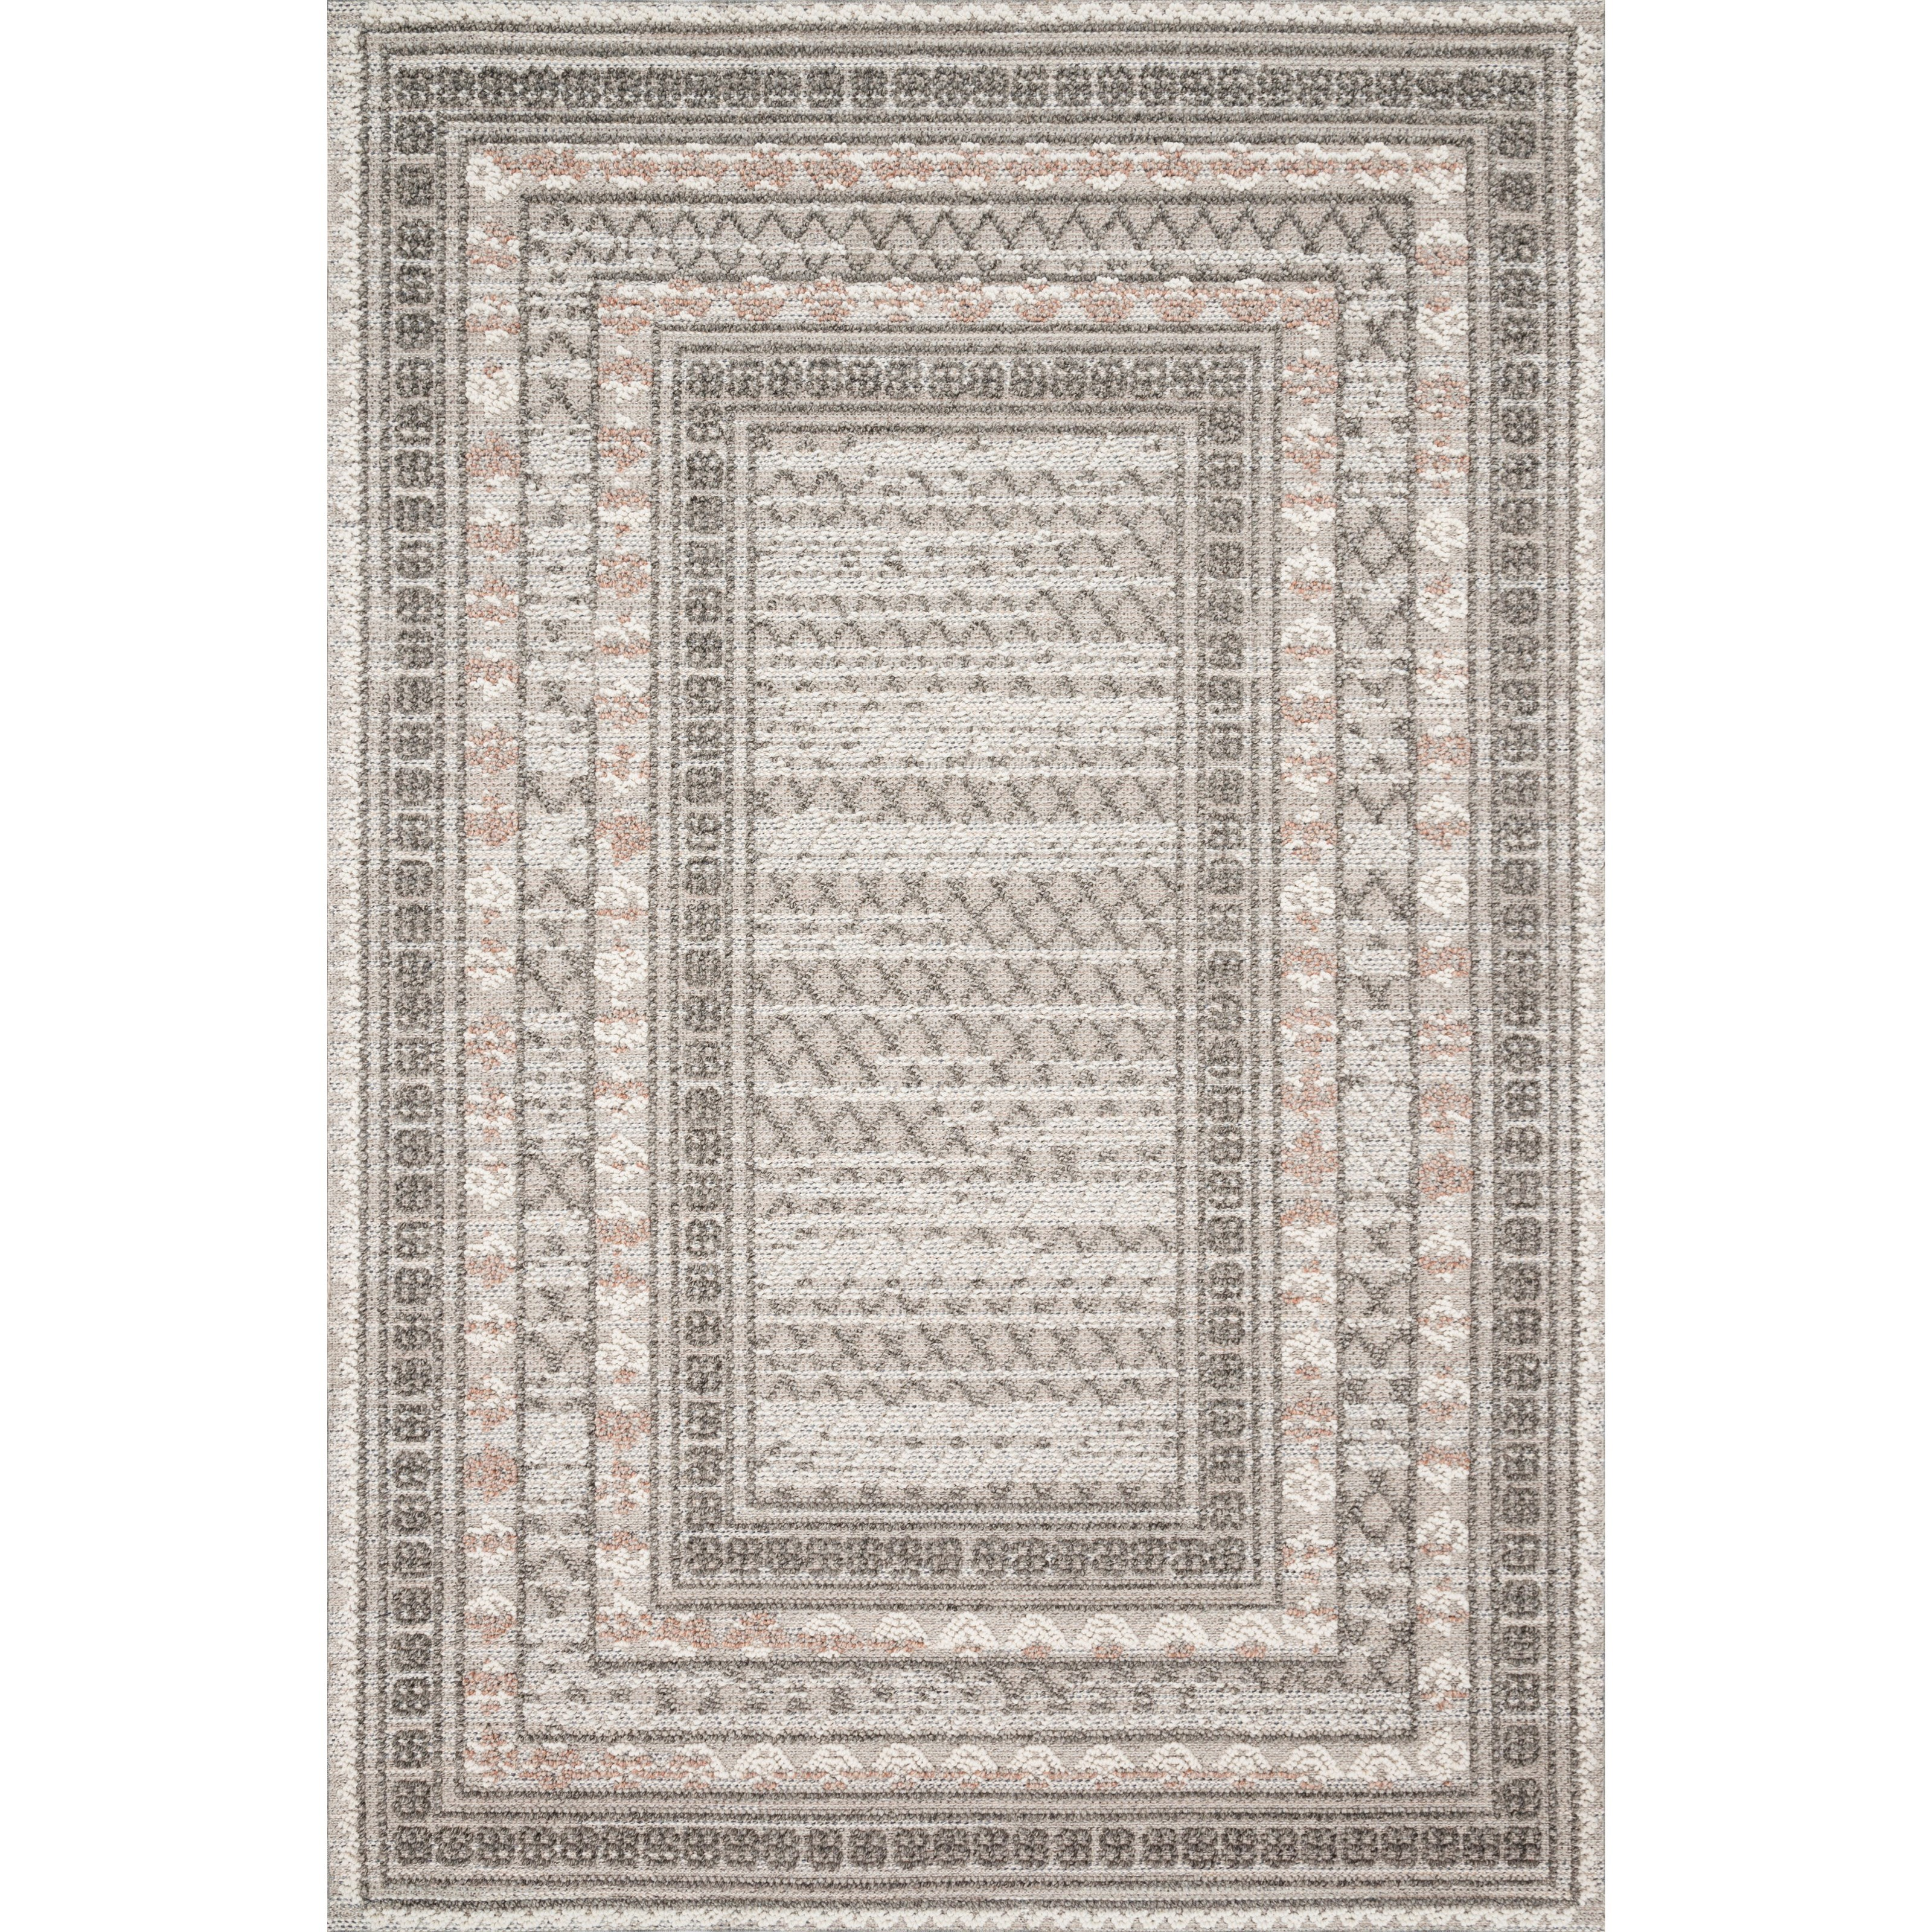 """Cole 1'6"""" x 1'6""""  Grey / Multi Rug by Loloi Rugs at Virginia Furniture Market"""